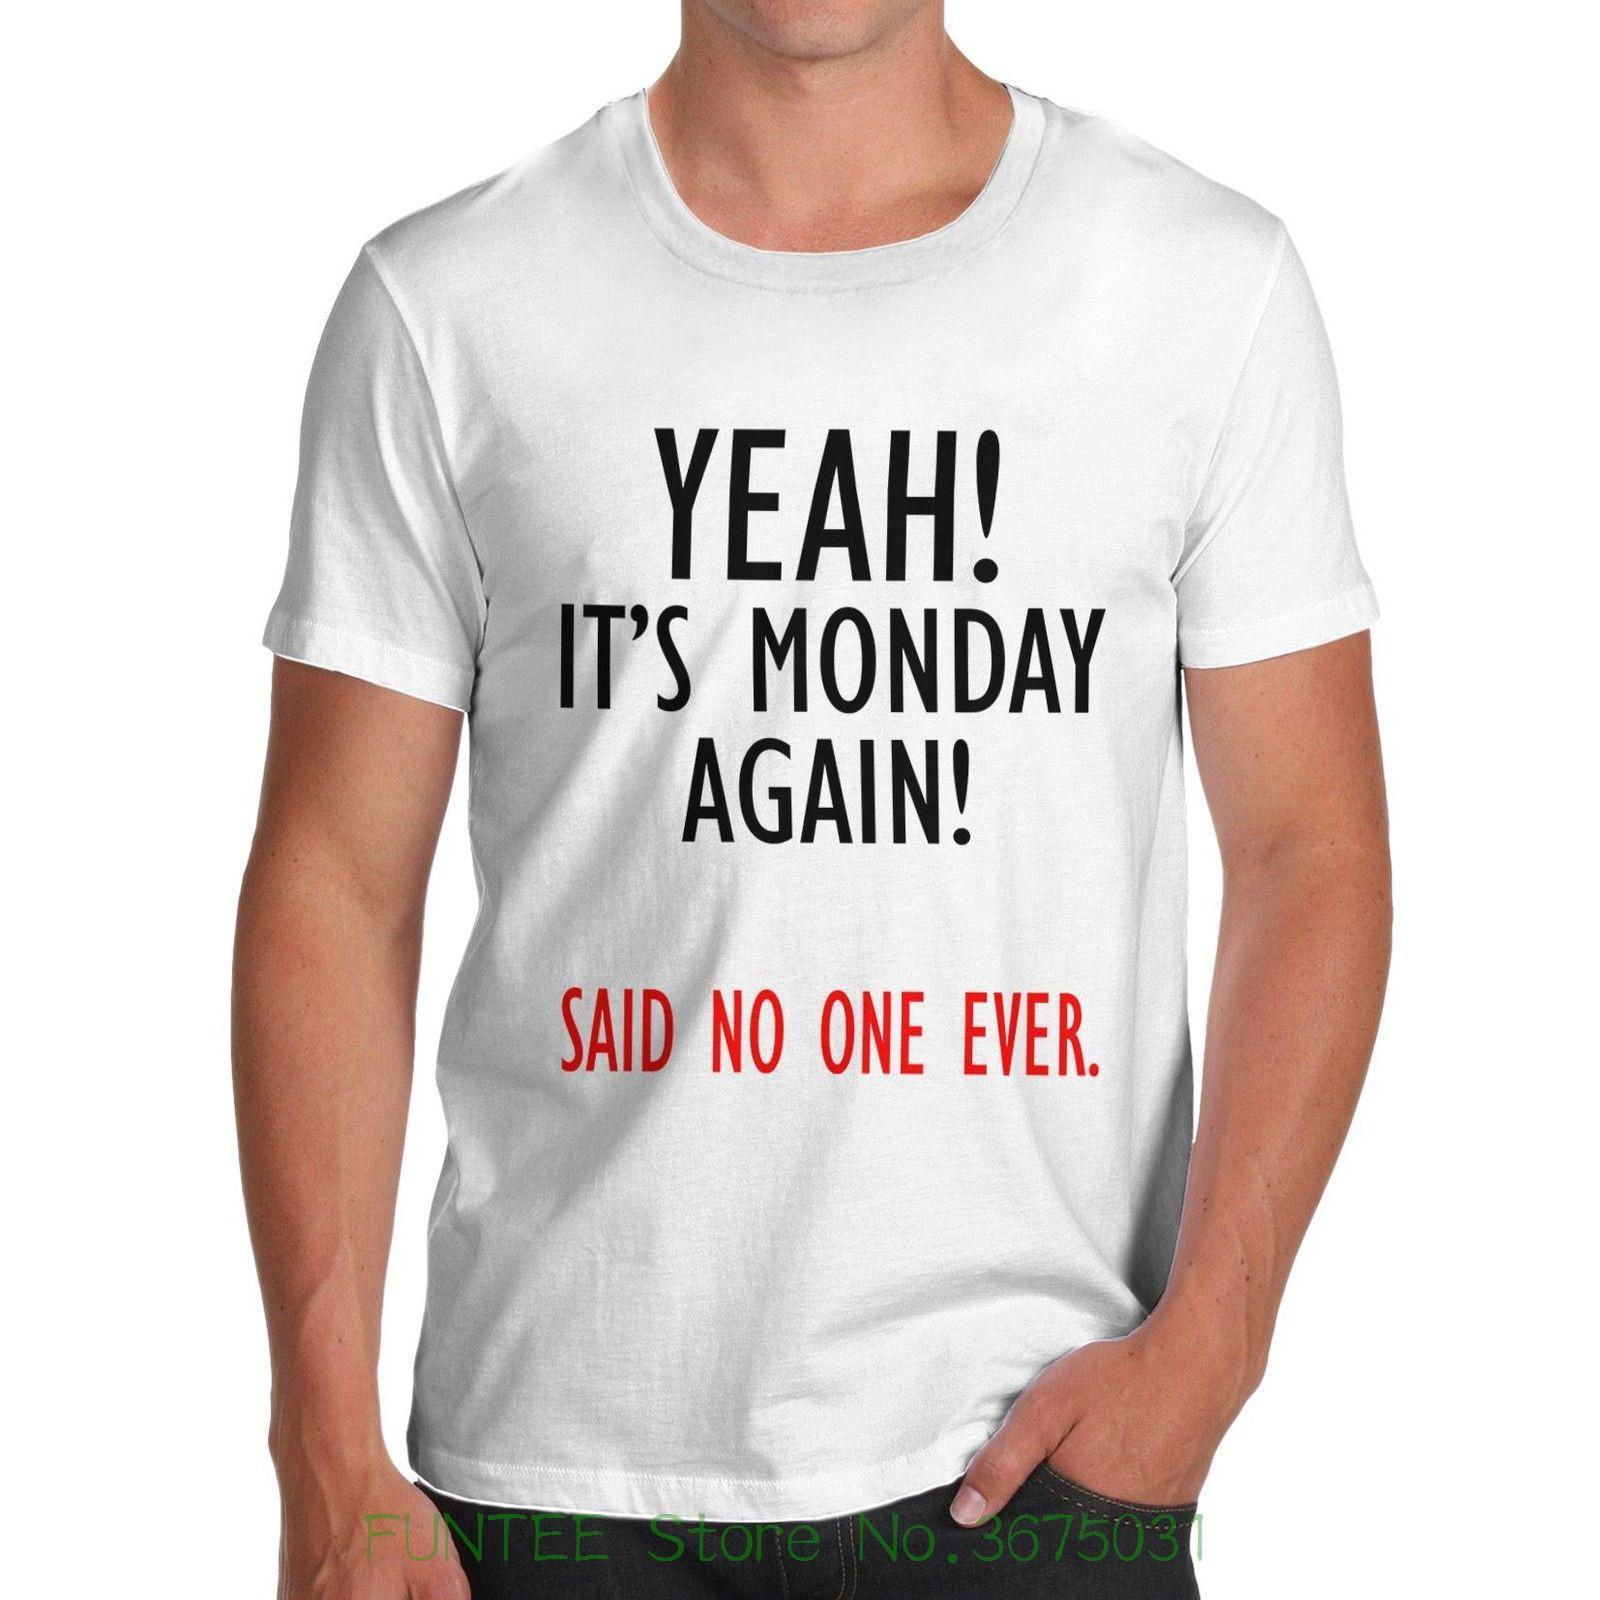 b07871197 Man Print T Shirt Hipster Men S Yeah! It S Monday Again! Funny ...